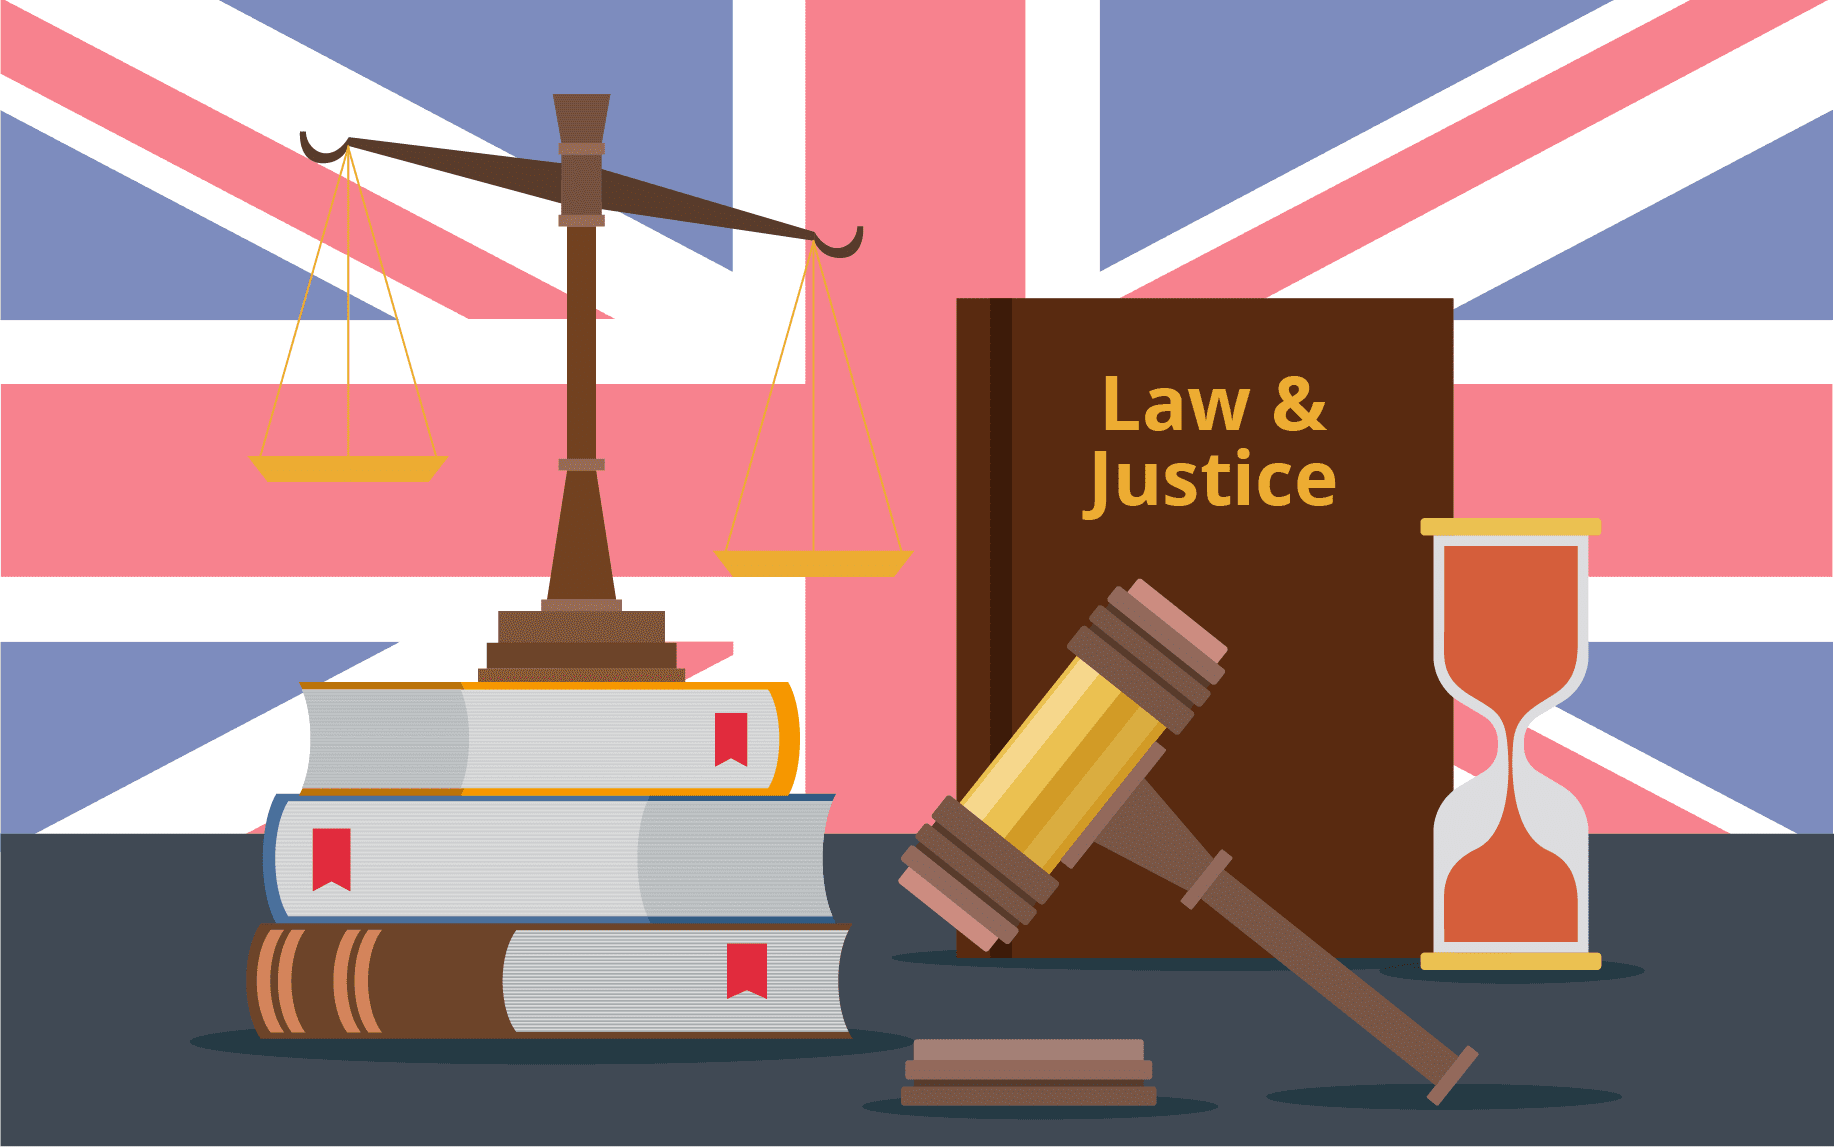 Comment on LLM in UK by Elvi